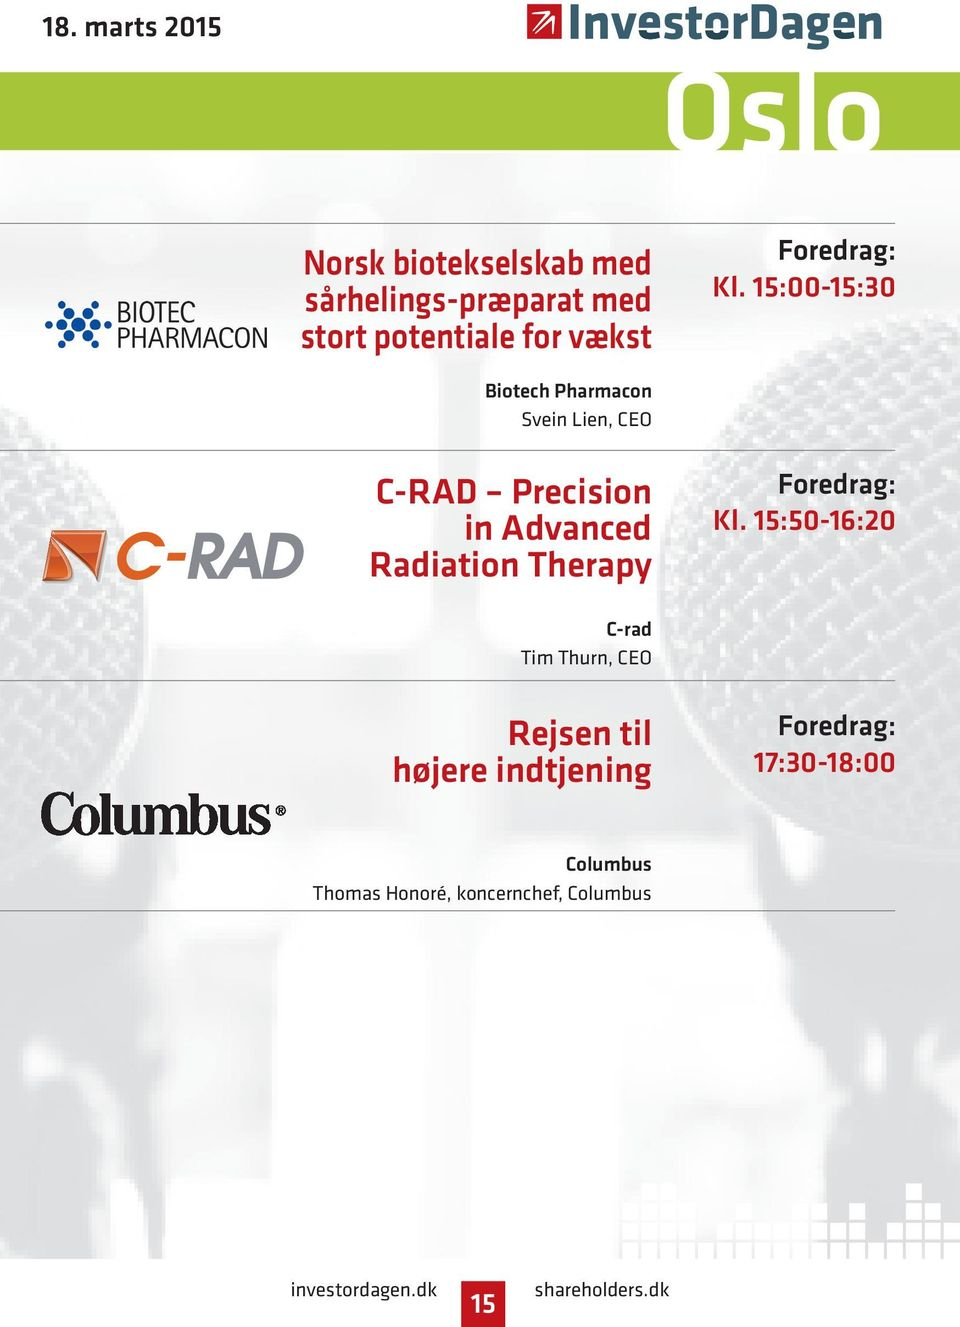 15:00-15:30 Biotech Pharmacon Svein Lien, CEO C-RAD Precision in Advanced